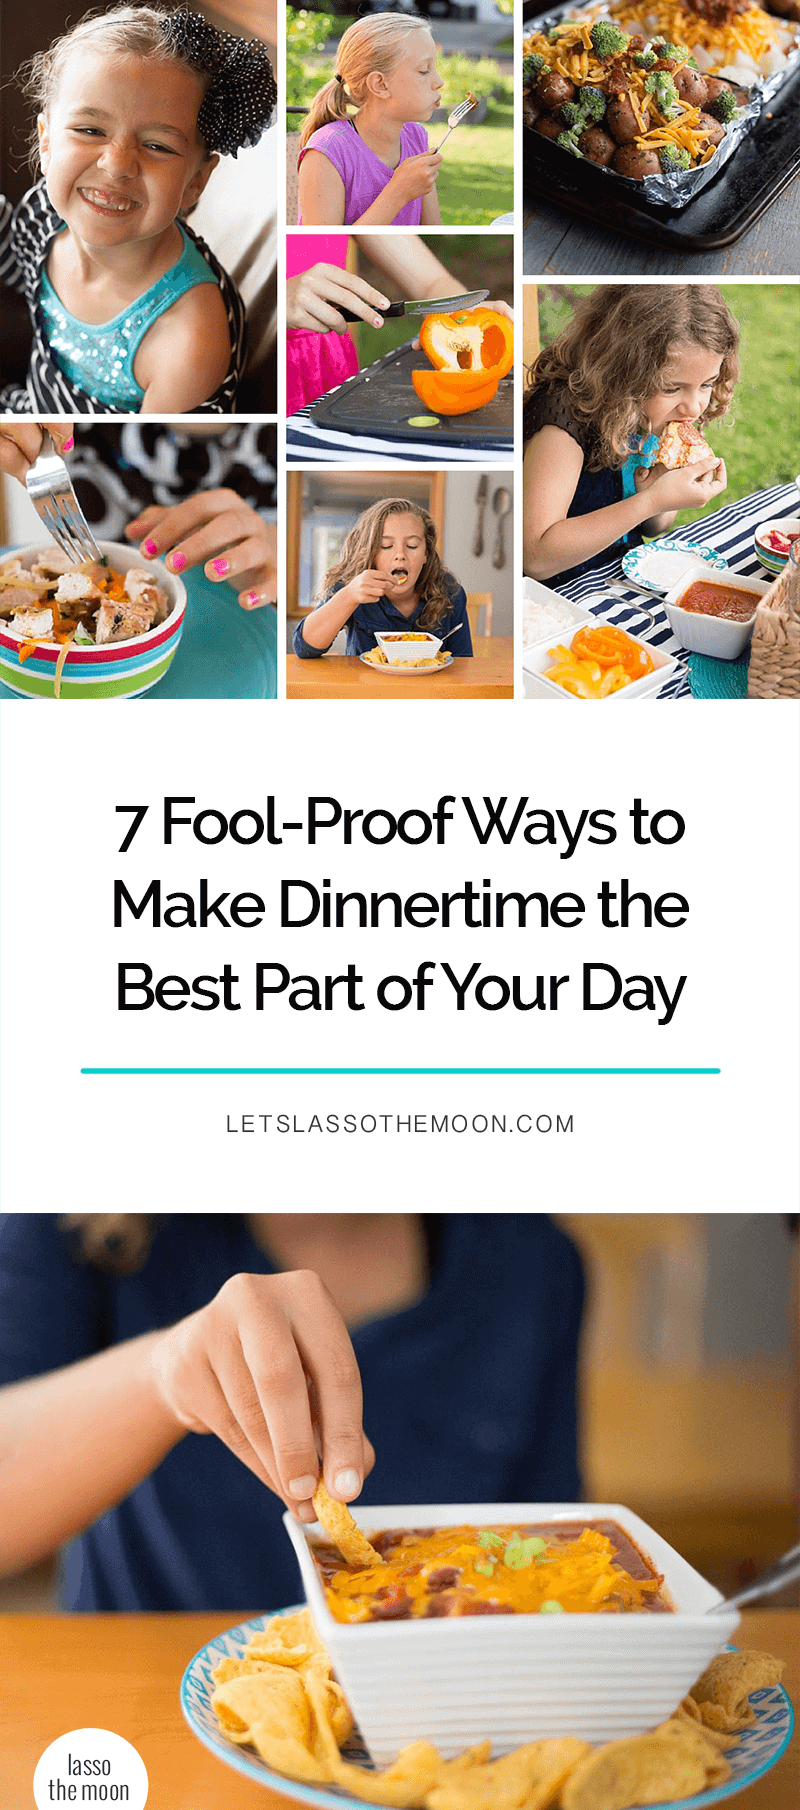 7 Fool-Proof Ways to Make Dinnertime the Best Part of Your Day #familydinner #dinnertime #familytime #dinnerideas *Loving this entire list of parent suggestions. So good. My kids are going to love this too.